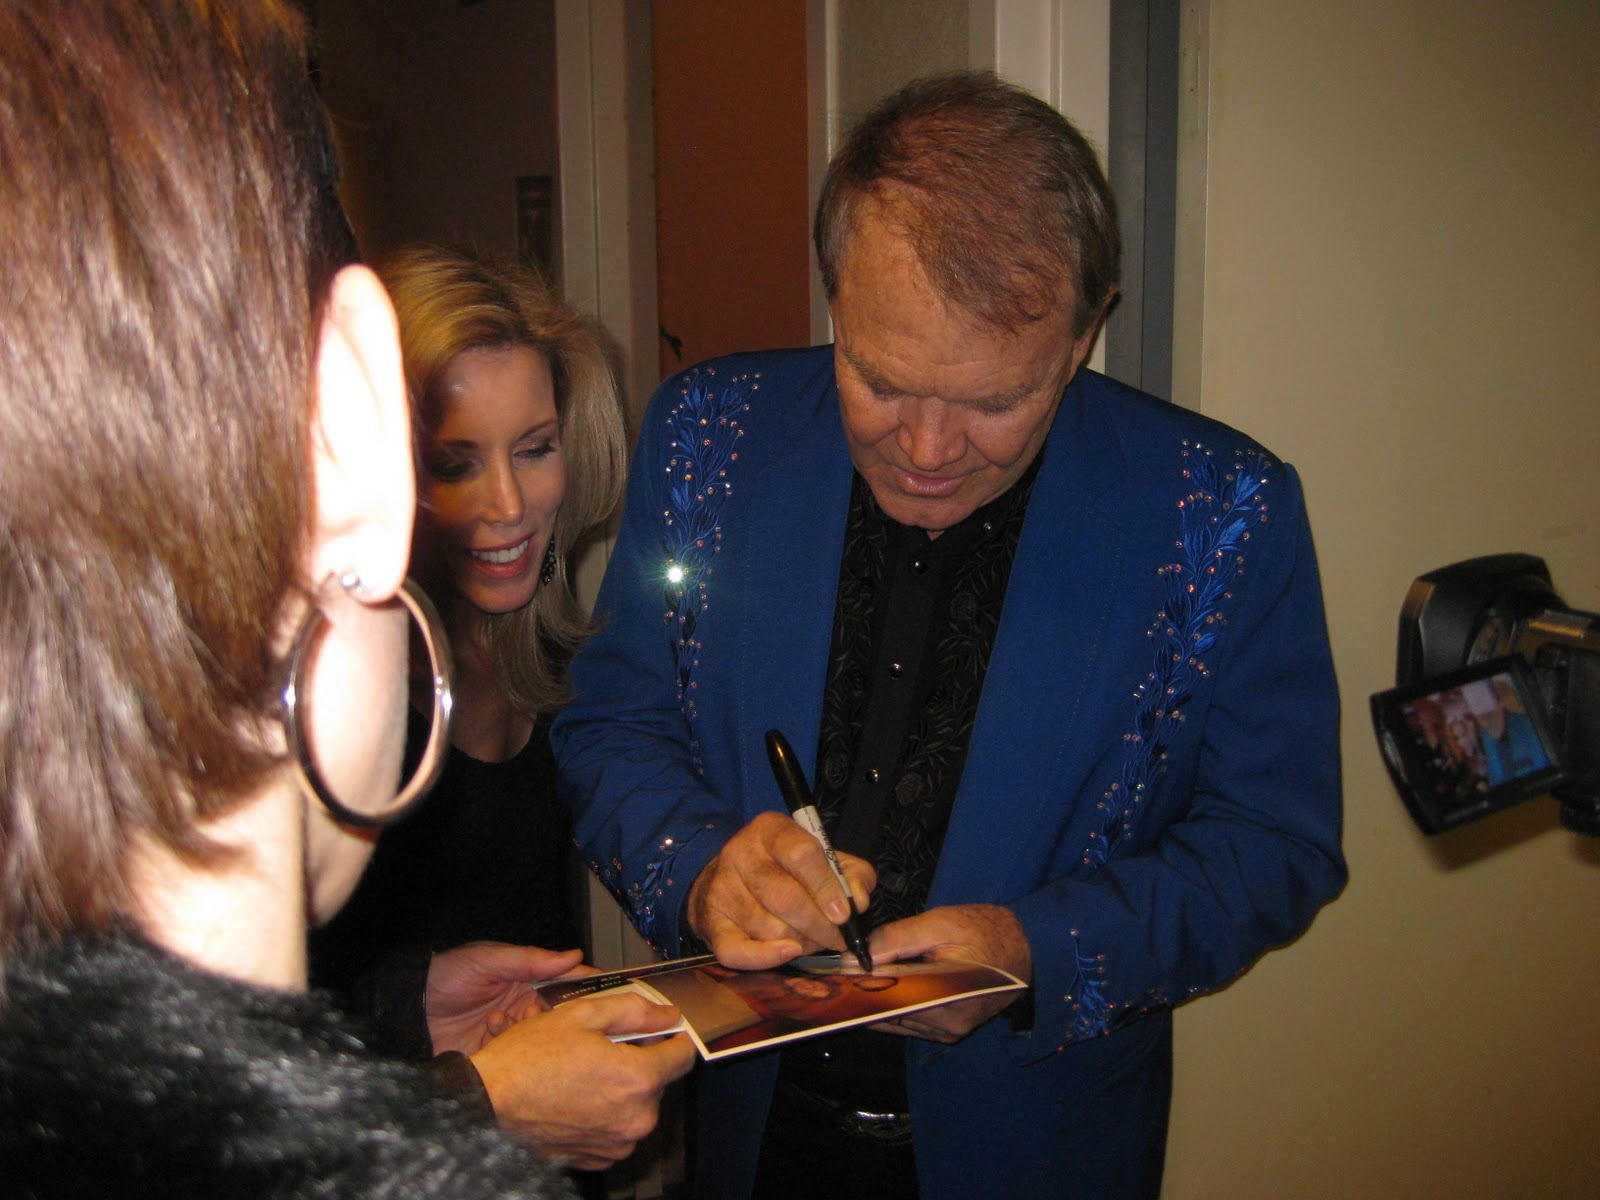 Glen signs robert s photo his wife kim looks on